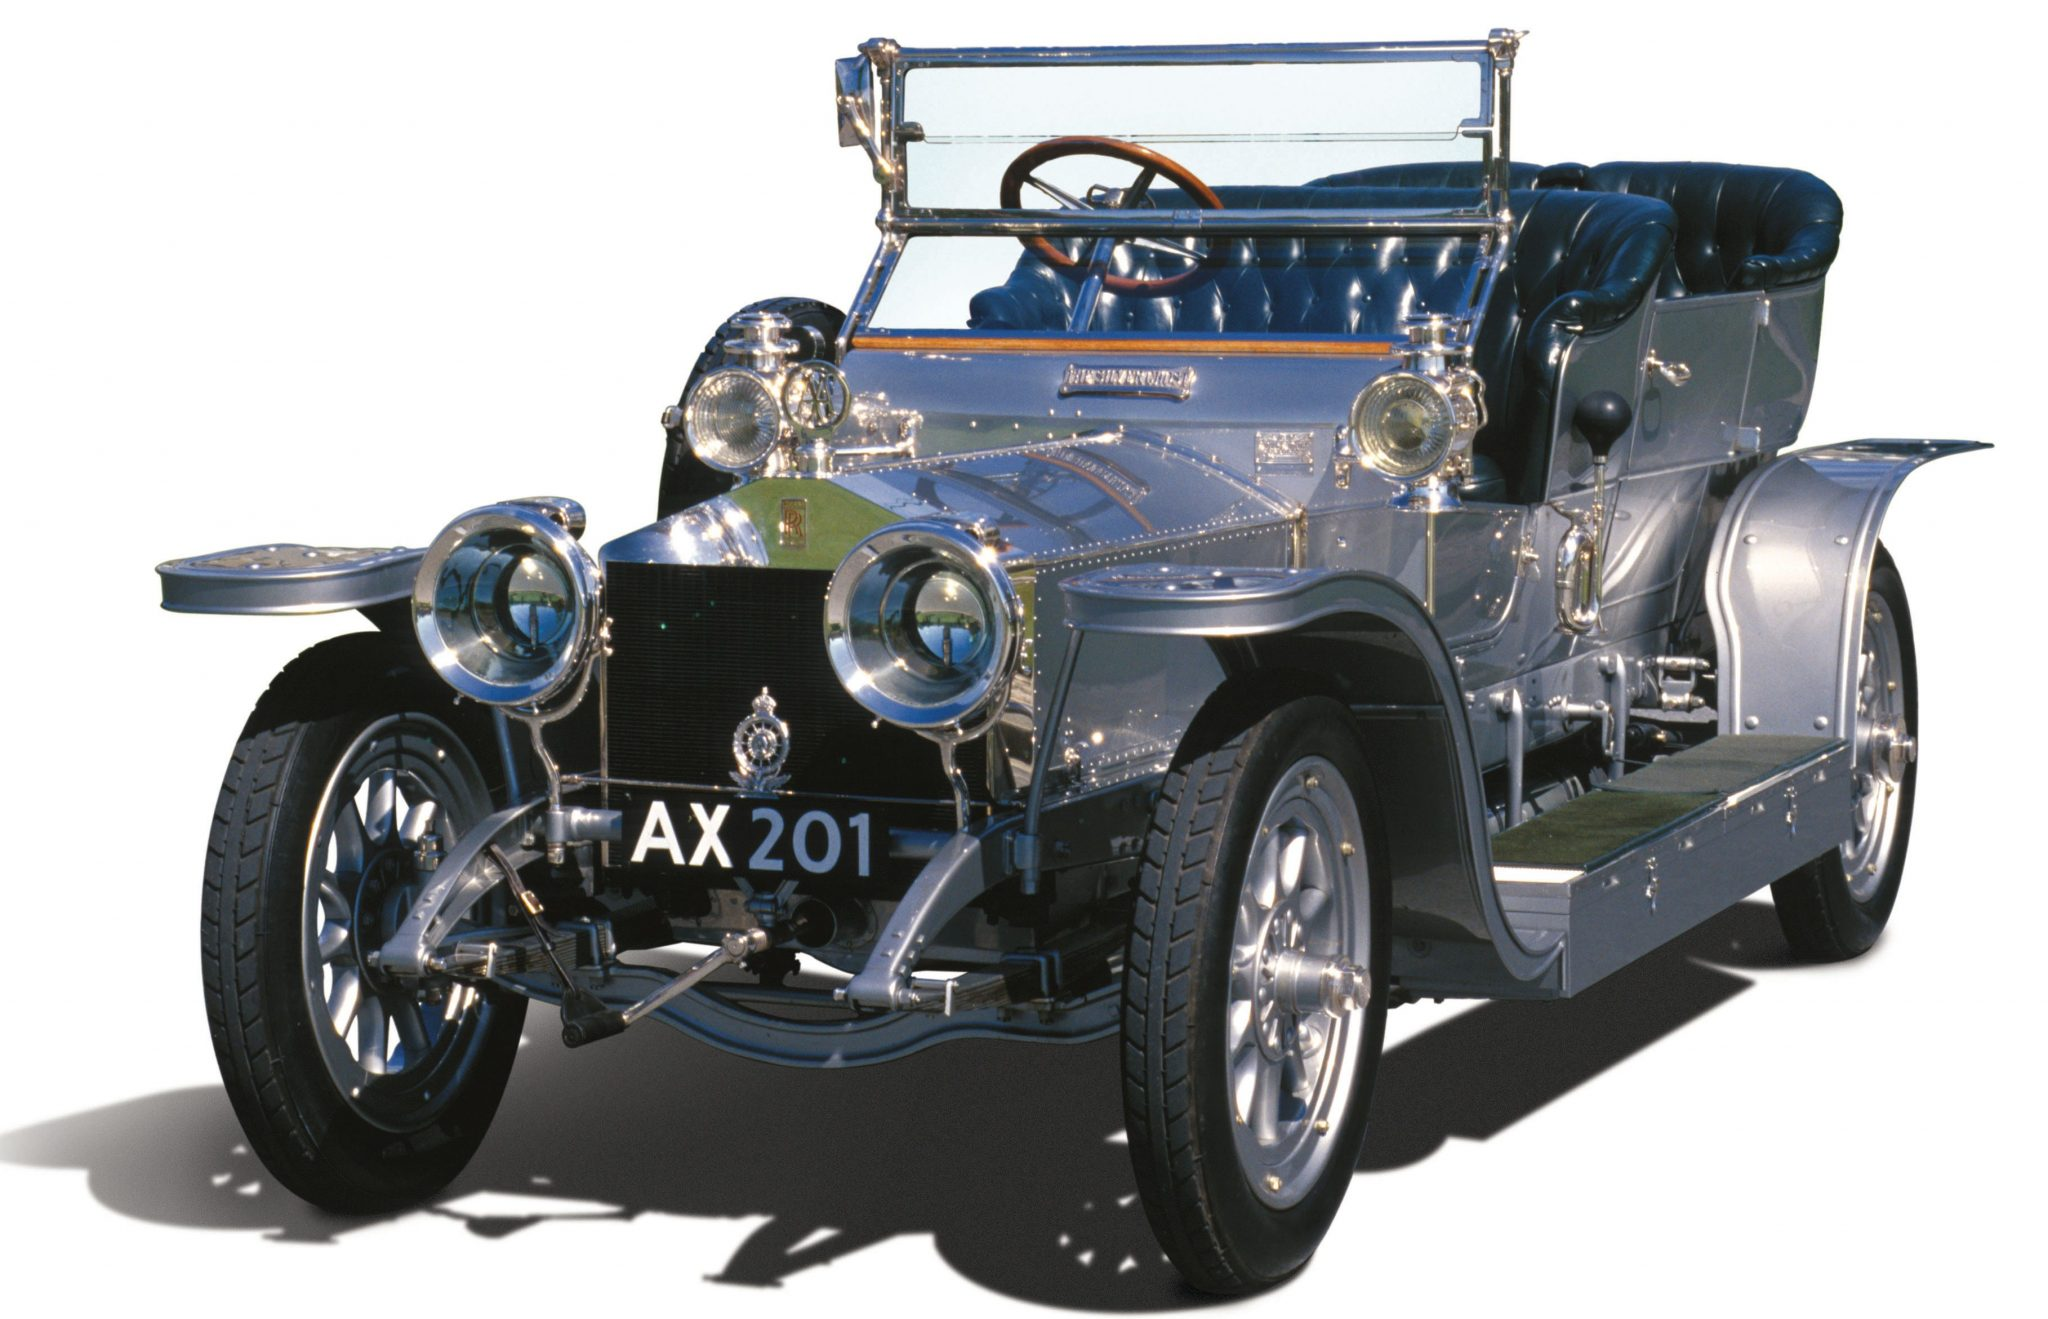 The First Rolls-Royce Silver Ghost